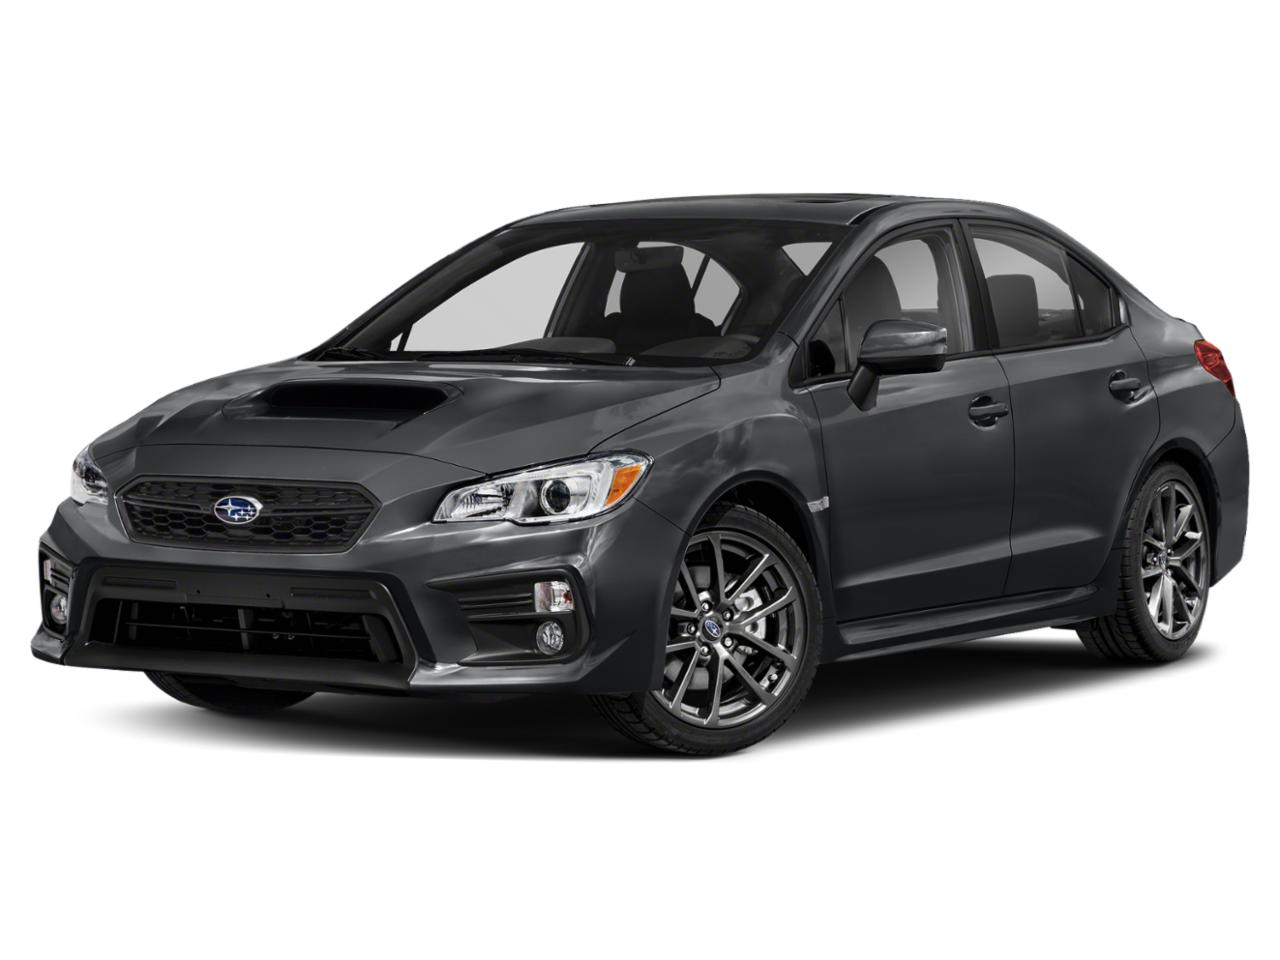 2020 Subaru WRX Vehicle Photo in Oshkosh, WI 54904